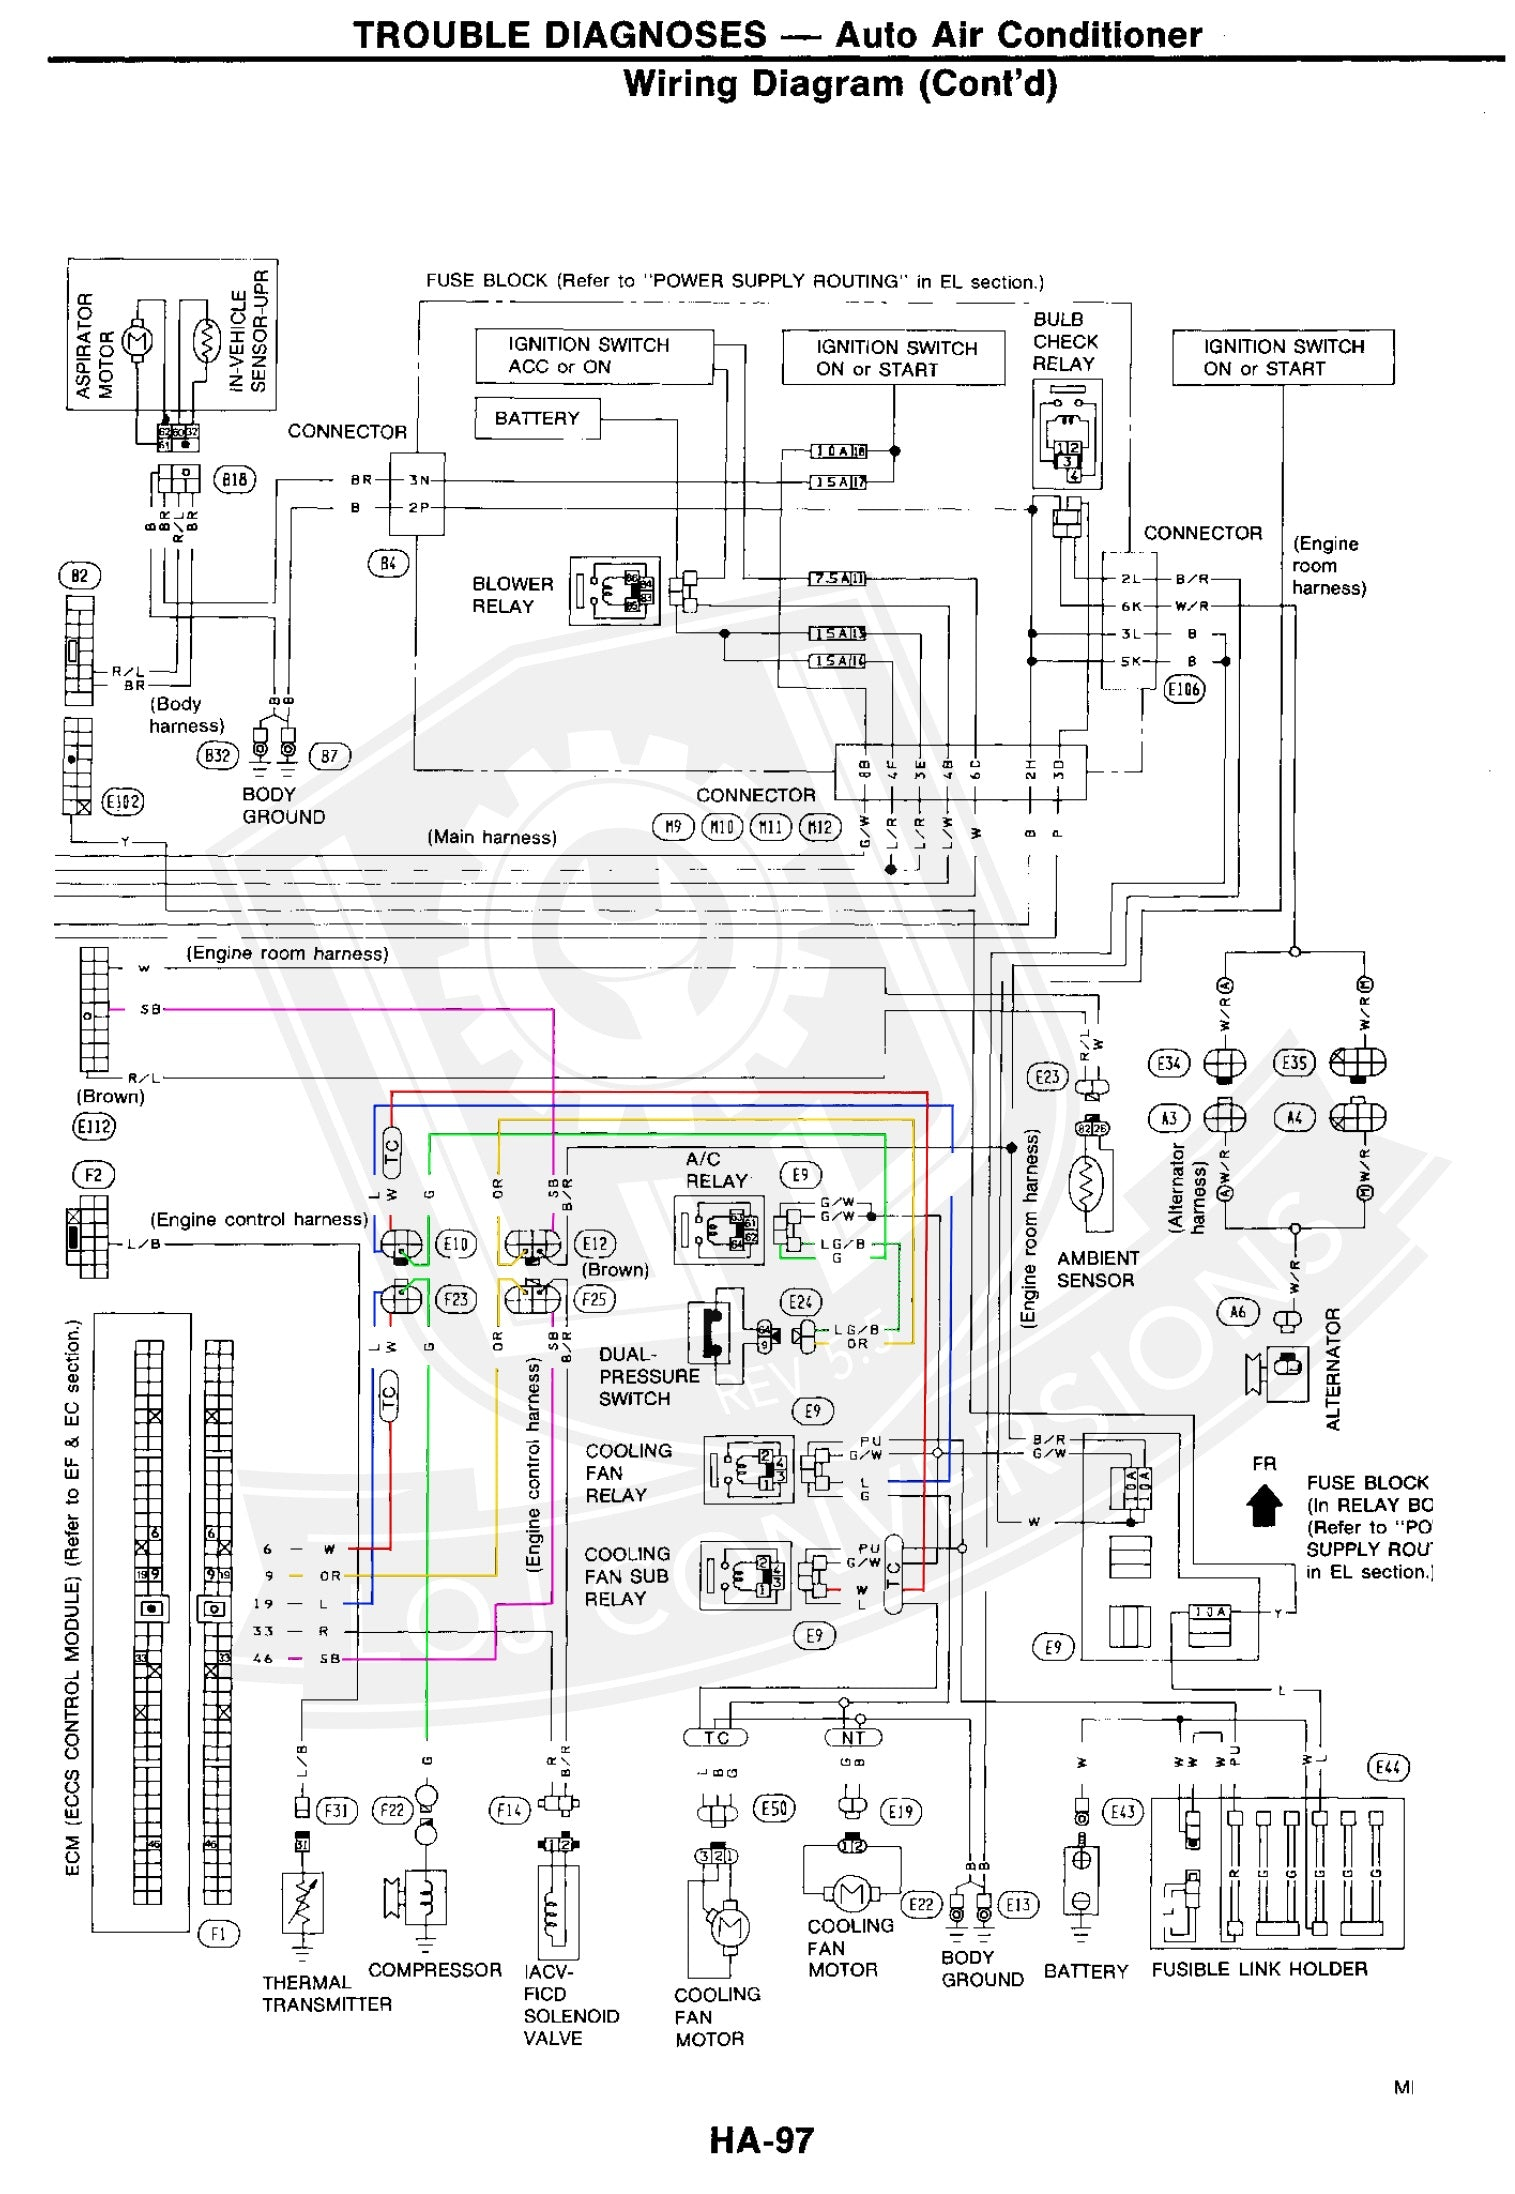 wiring the ac in a 300zx engine conversion loj conversions rh lojkits com  300ZX Belt Diagram 300ZX Trunk Diagrams